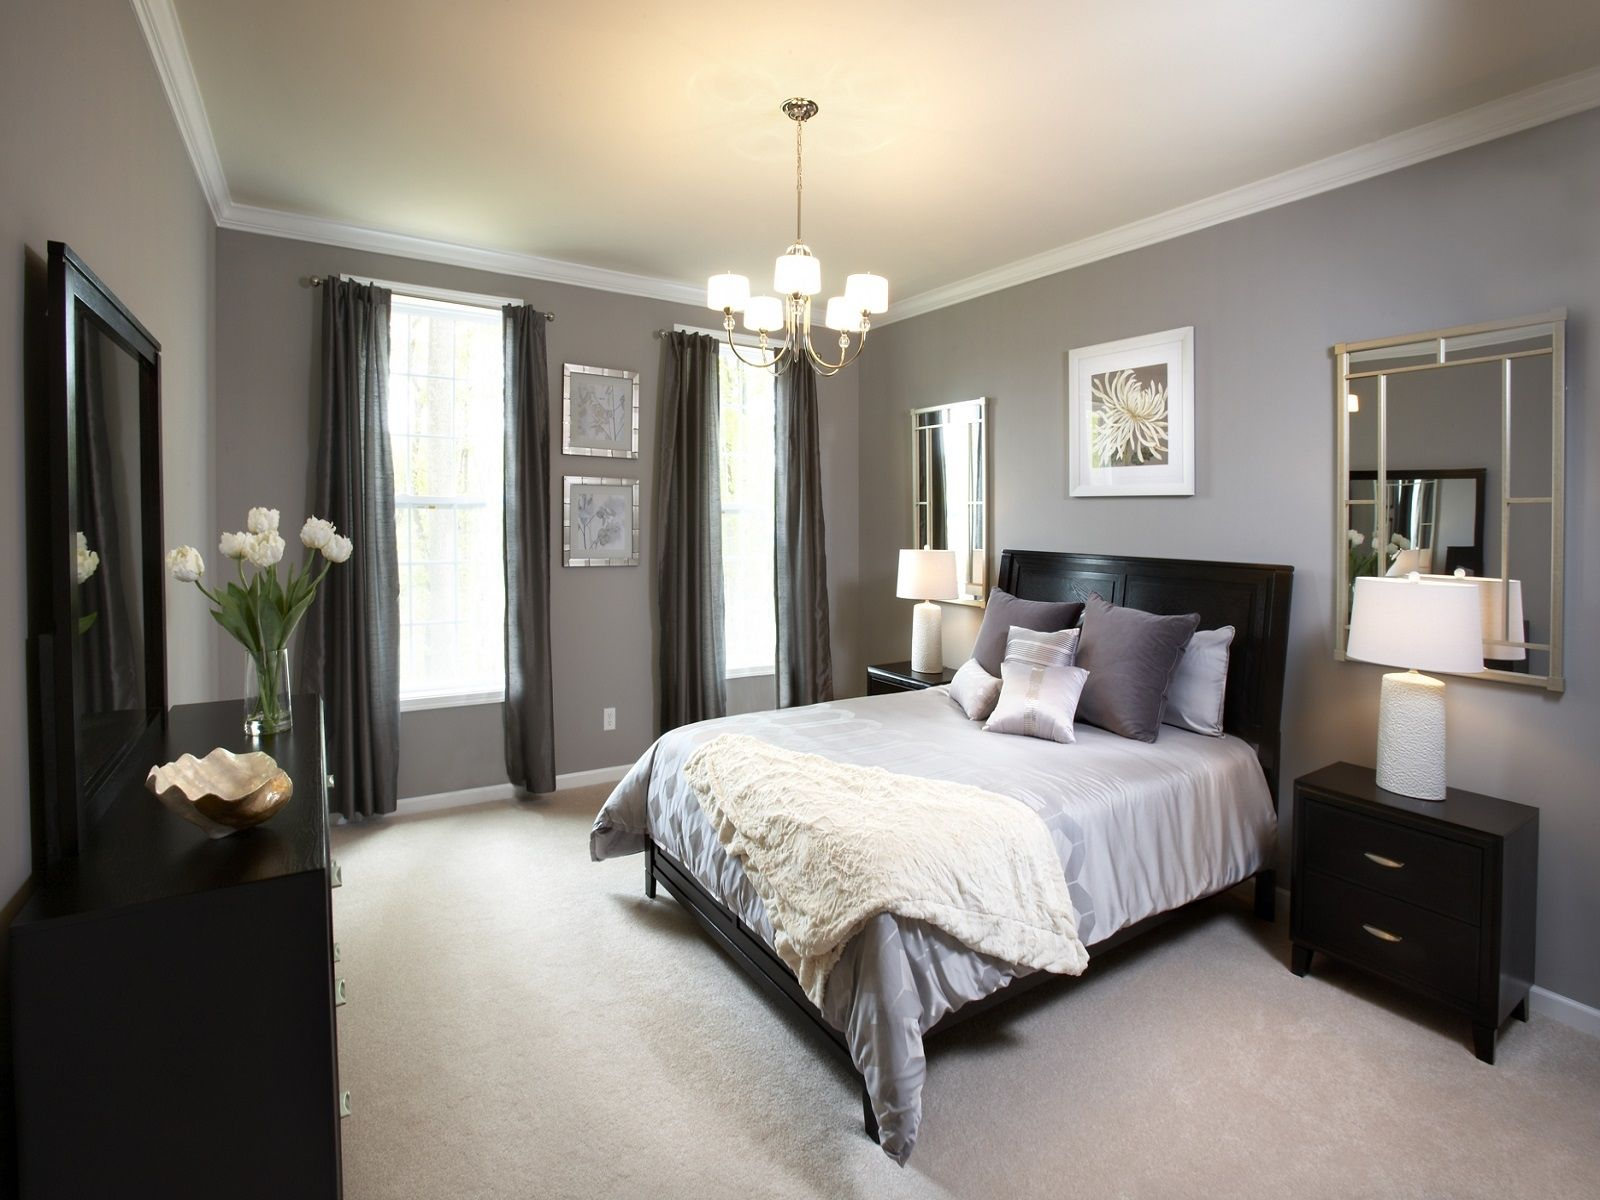 How To Decorate A Bedroom New At Images of Wonderful